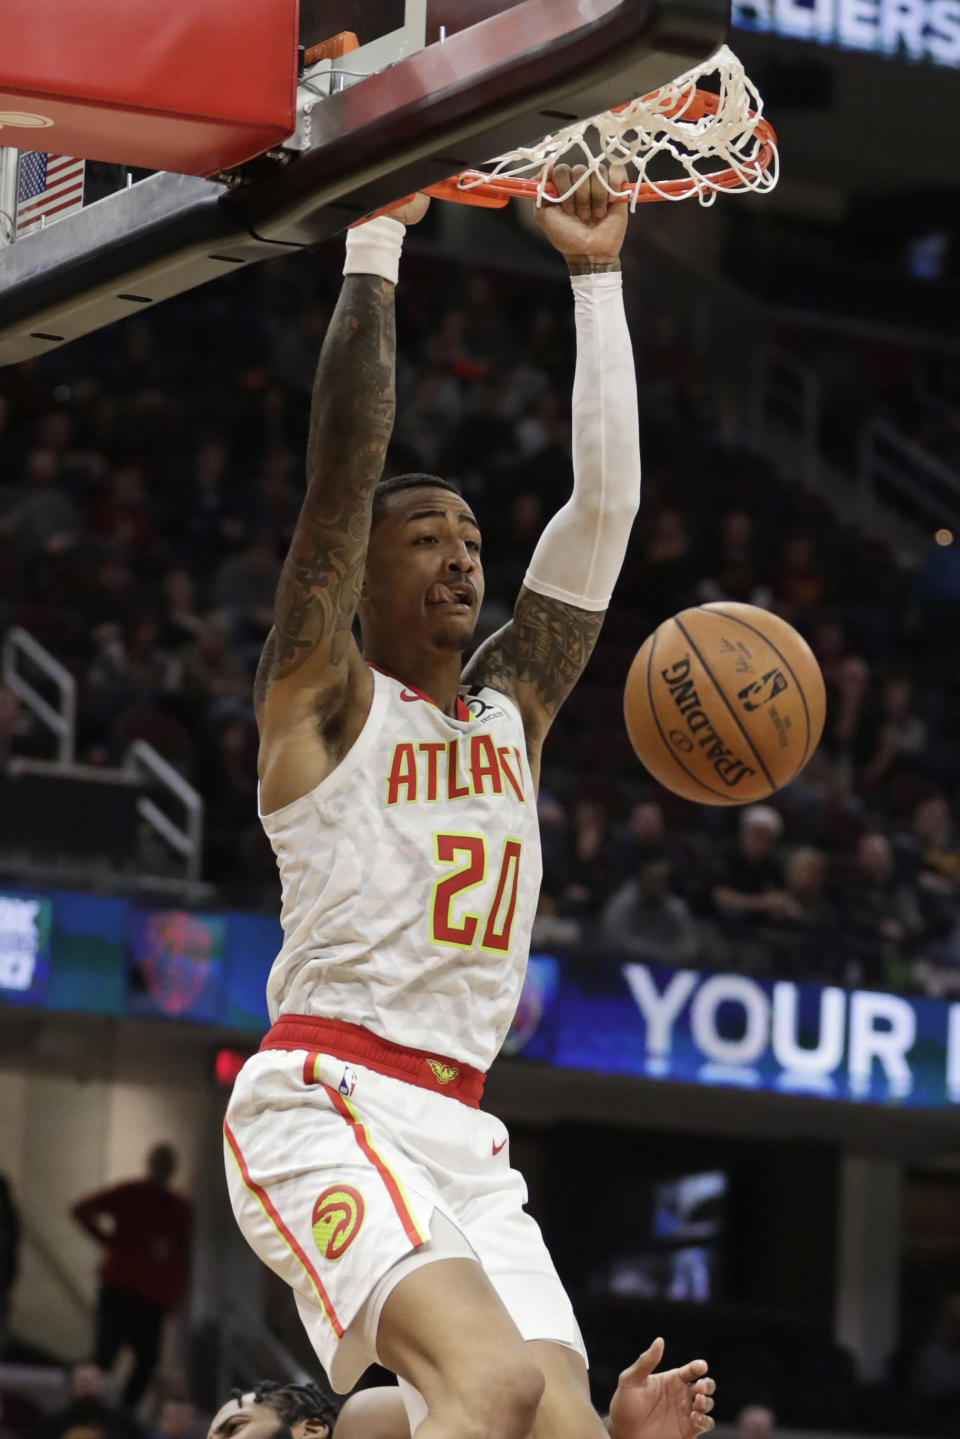 Atlanta Hawks' John Collins dunks the ball against the Cleveland Cavaliers in the second half of an NBA basketball game, Wednesday, Feb. 12, 2020, in Cleveland. The Cavaliers won 127-105. (AP Photo/Tony Dejak)